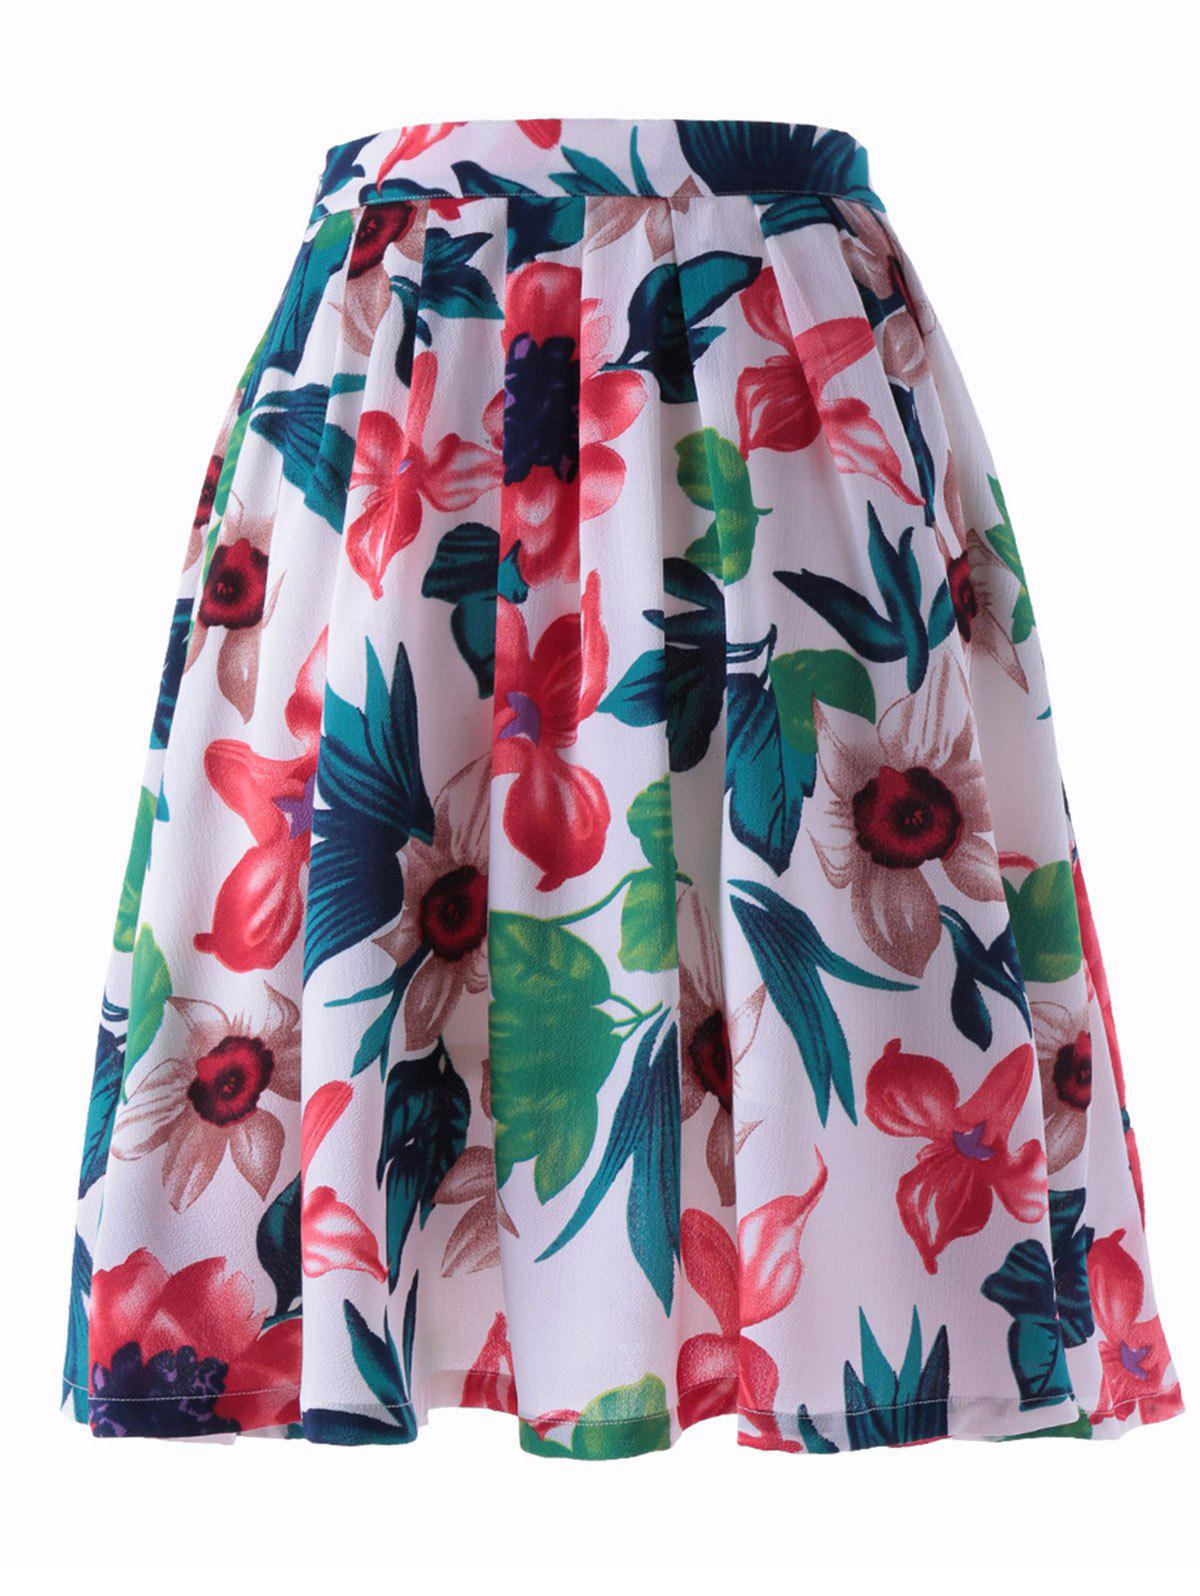 Stylish Printed Pleating Skirts For Women